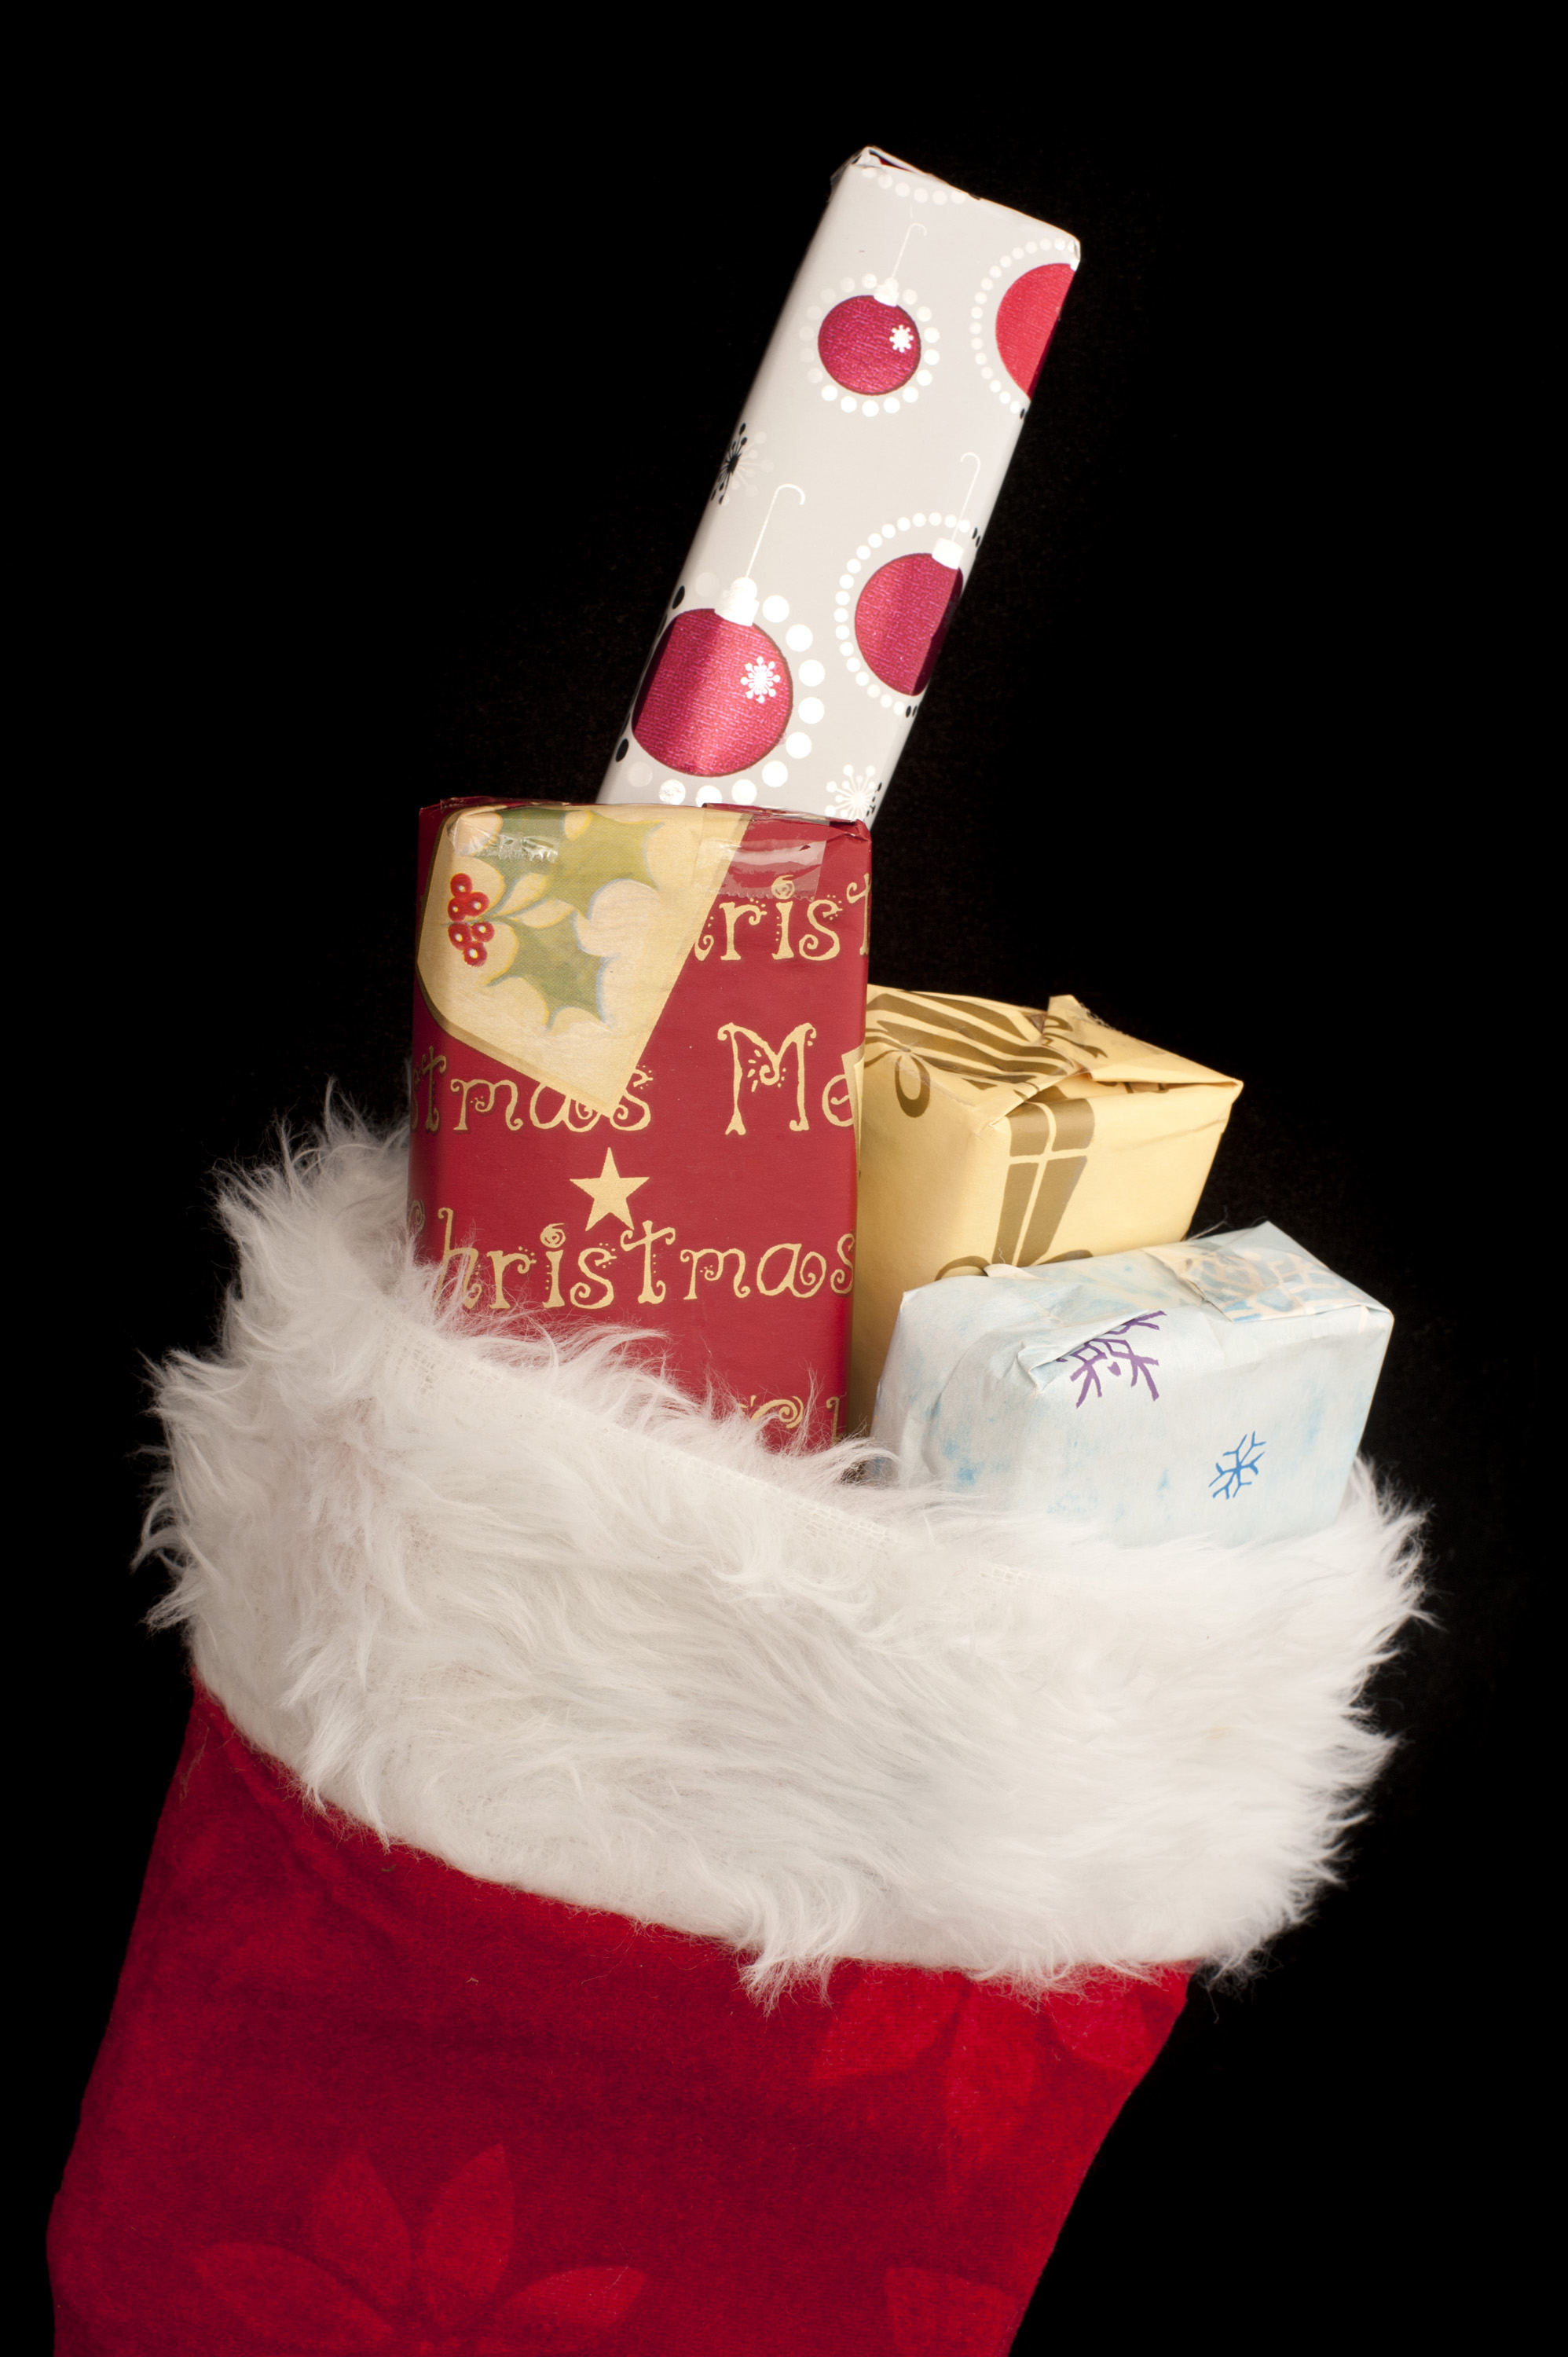 Festive red Christmas stocking filled with red , white and gold themed gifts over a black background